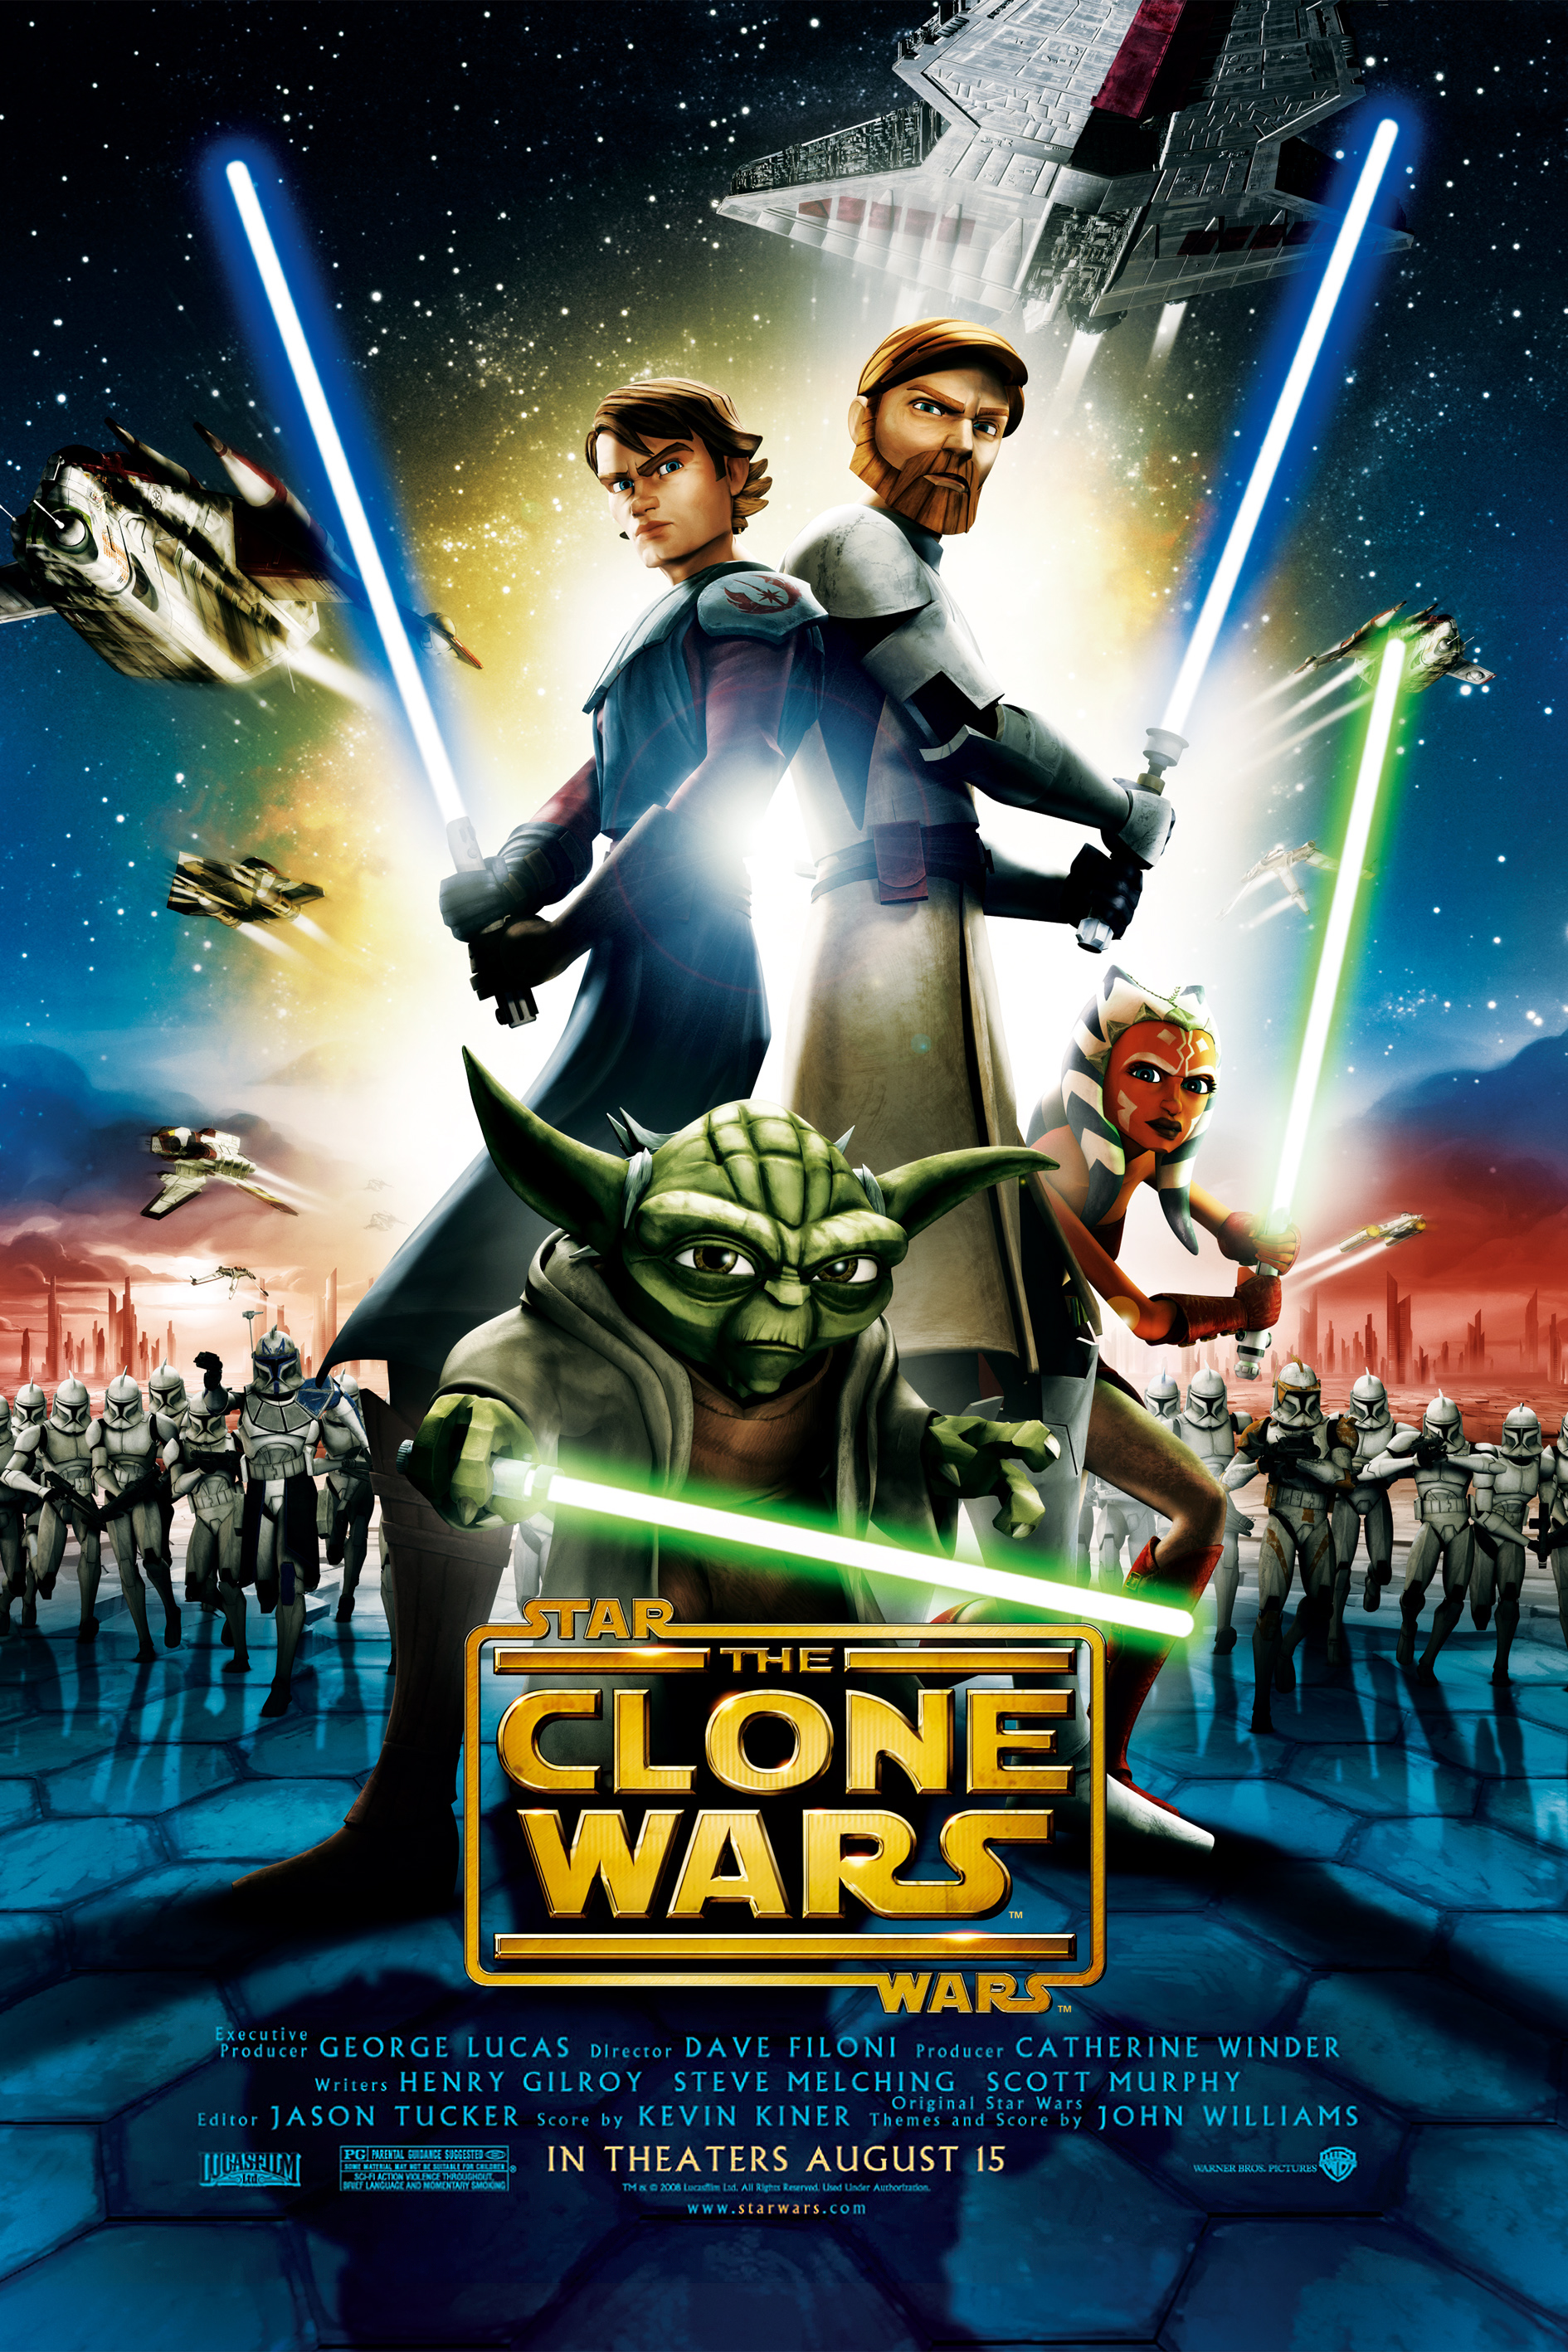 Star wars the clone wars film wookieepedia the star wars wiki